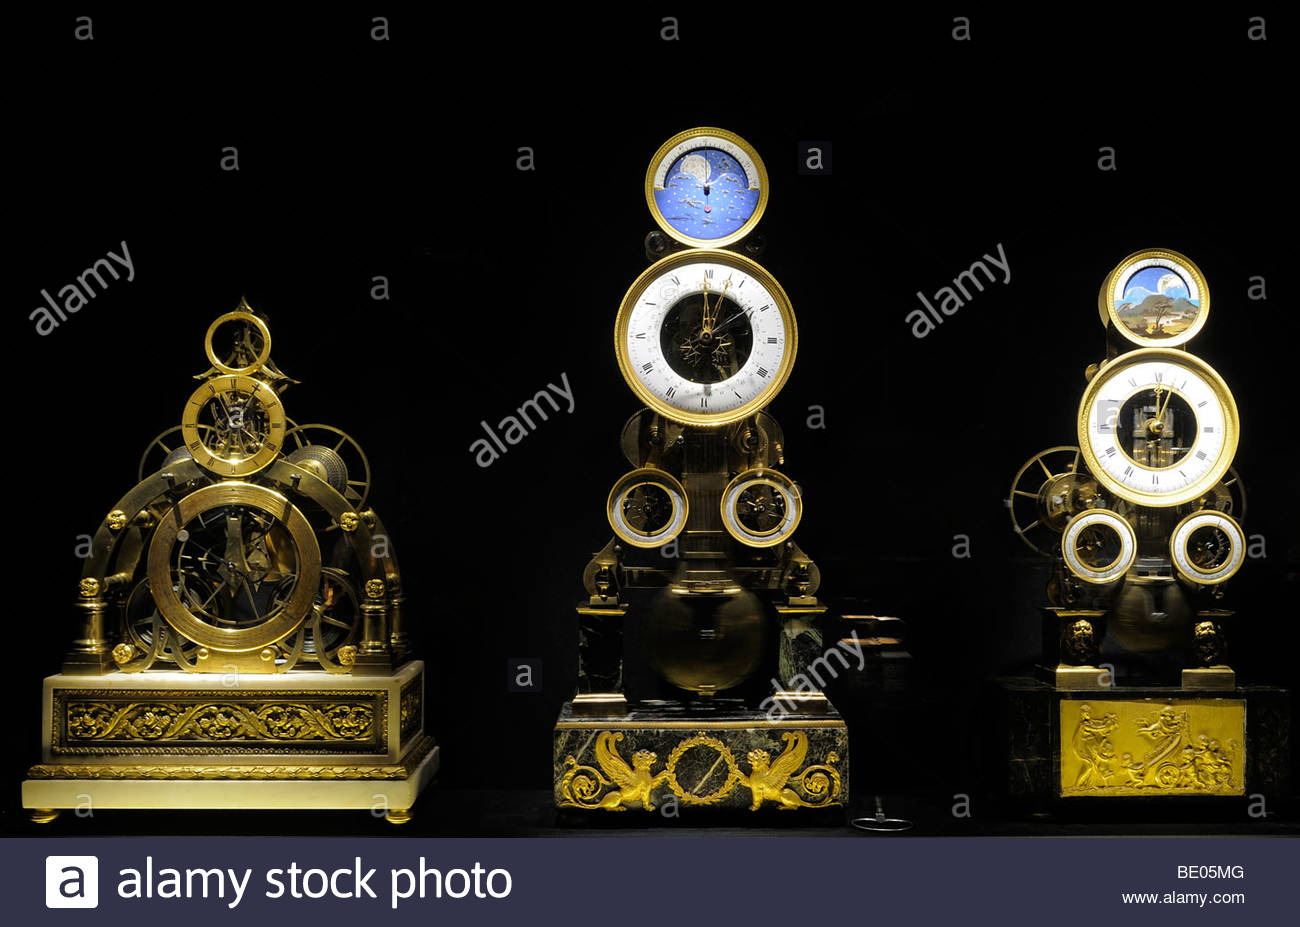 Antique Watches & Clocks displayed at the L.A Mayer Museum of  Islamic Art in west Jerusalem Israel - Stock Image